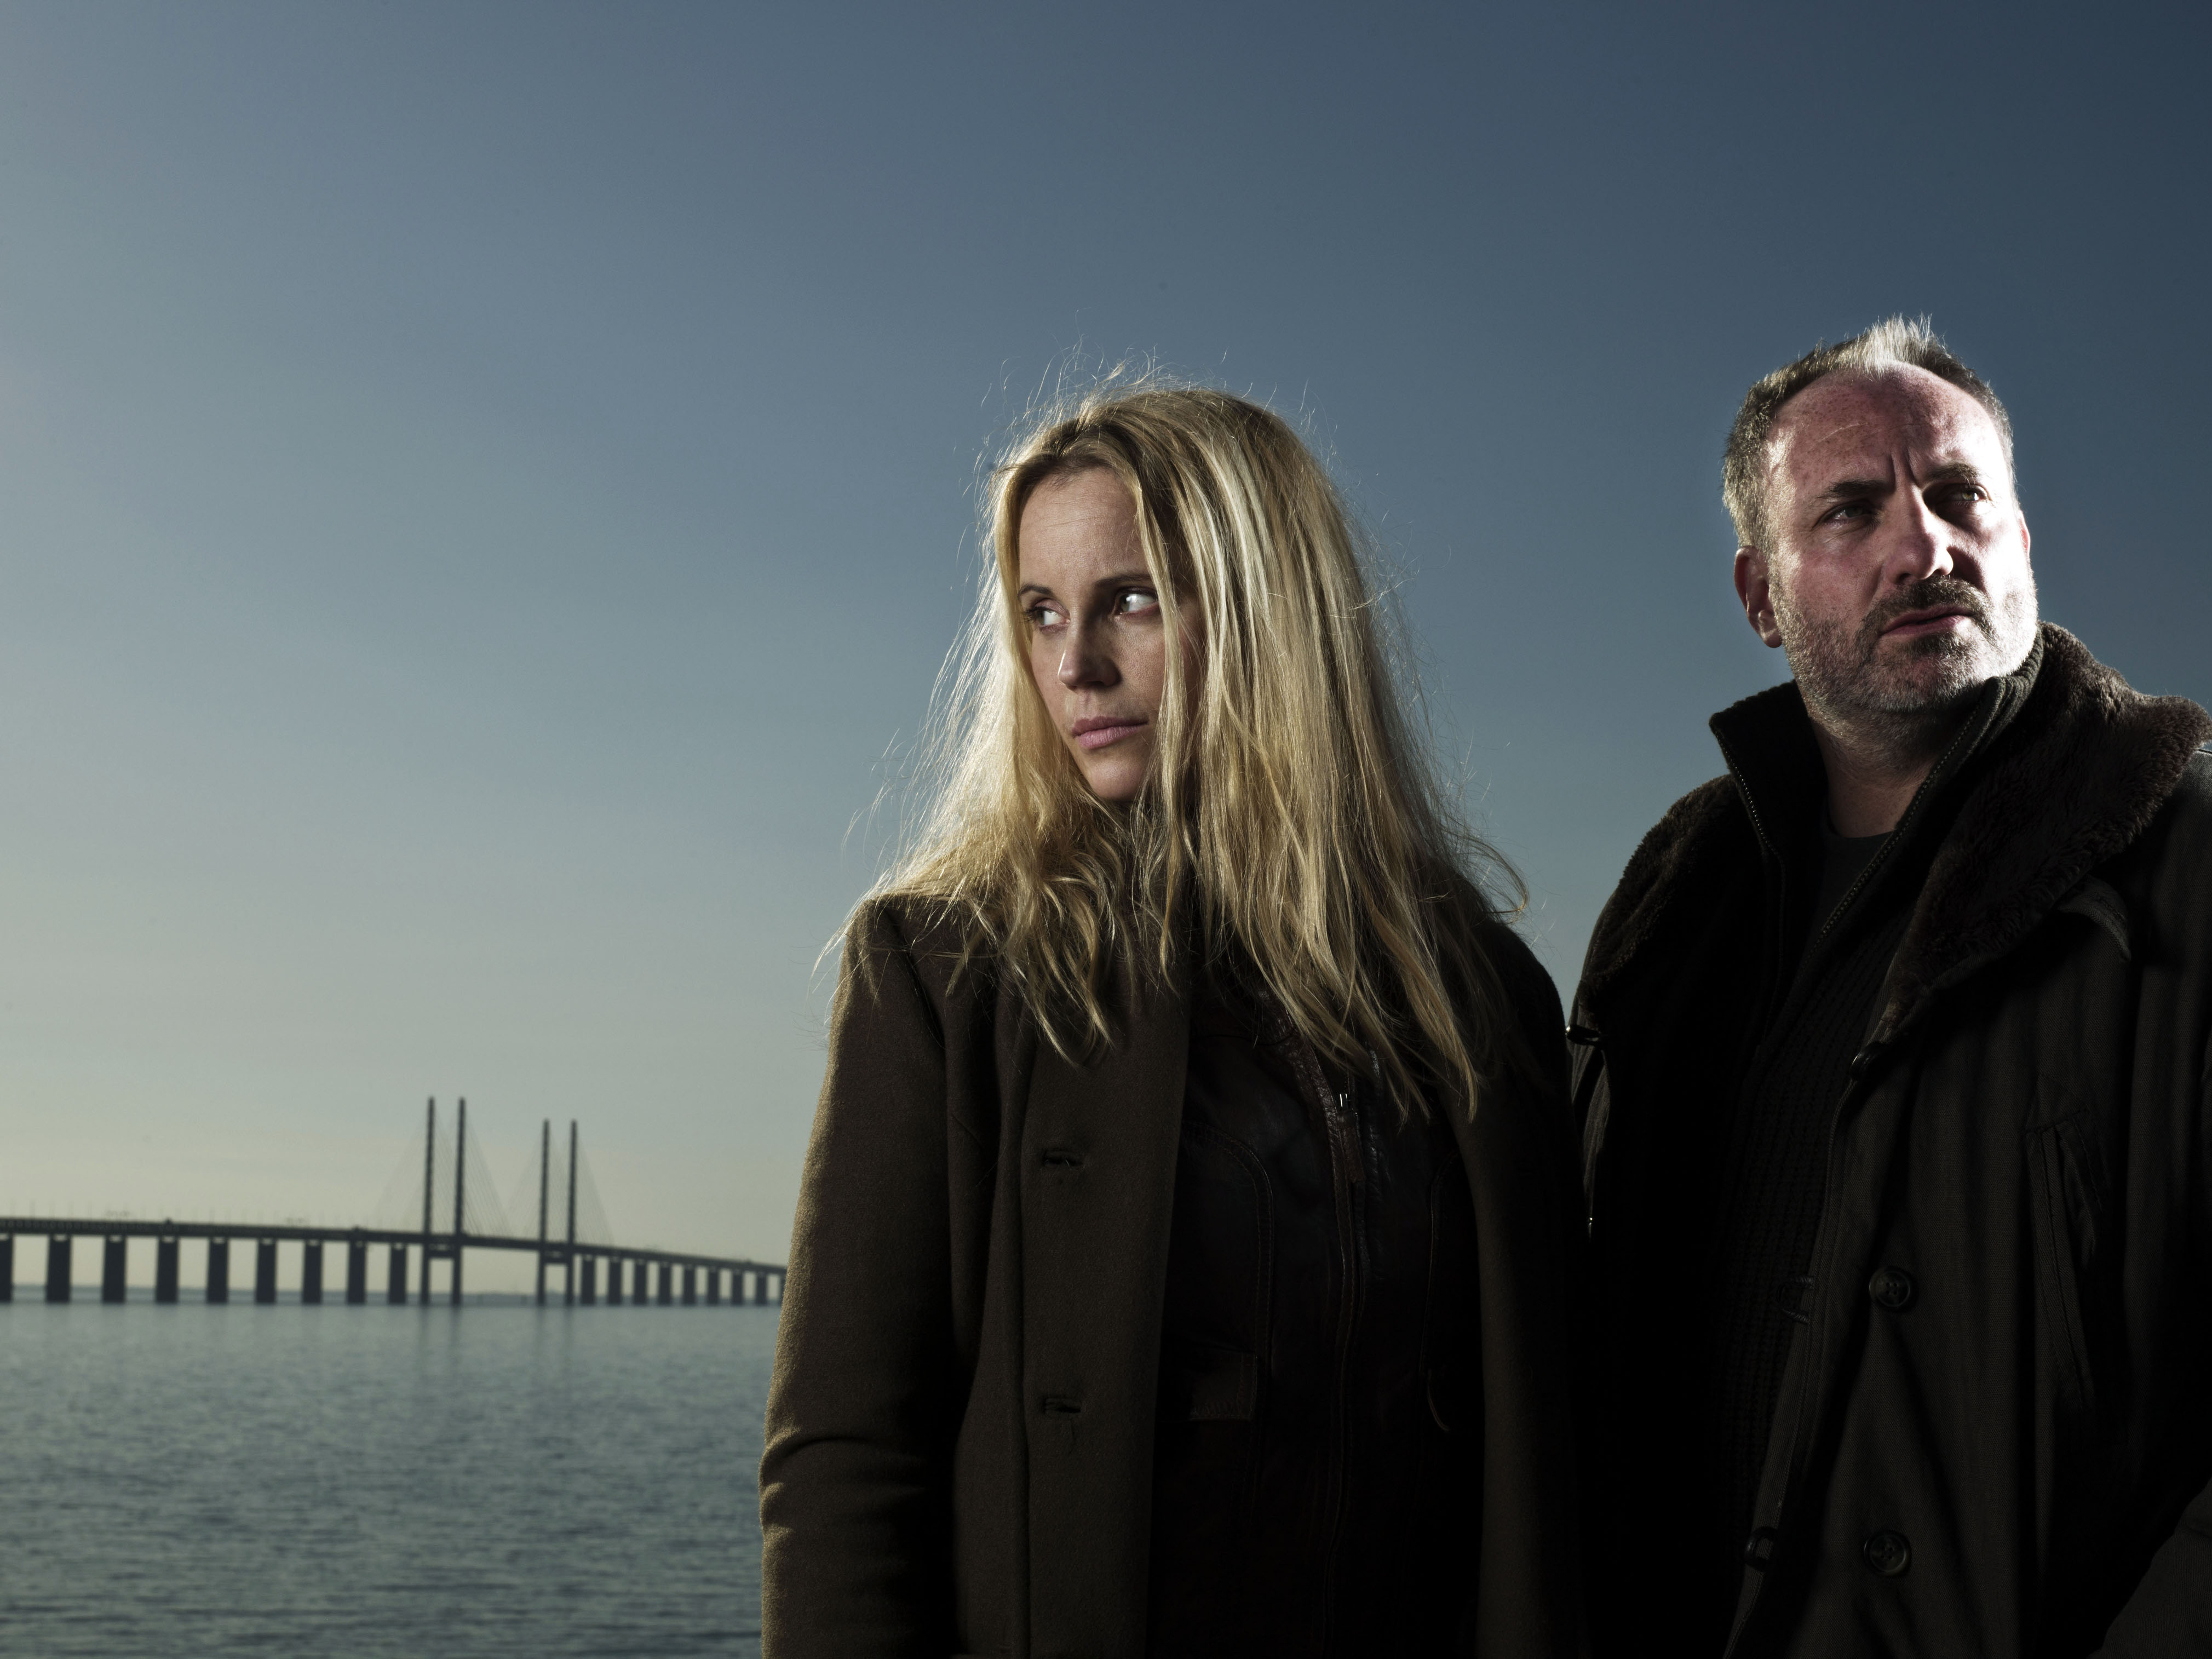 Zweedse Series The Bridge 3 Will Be 39more Danish 39 Mecetes